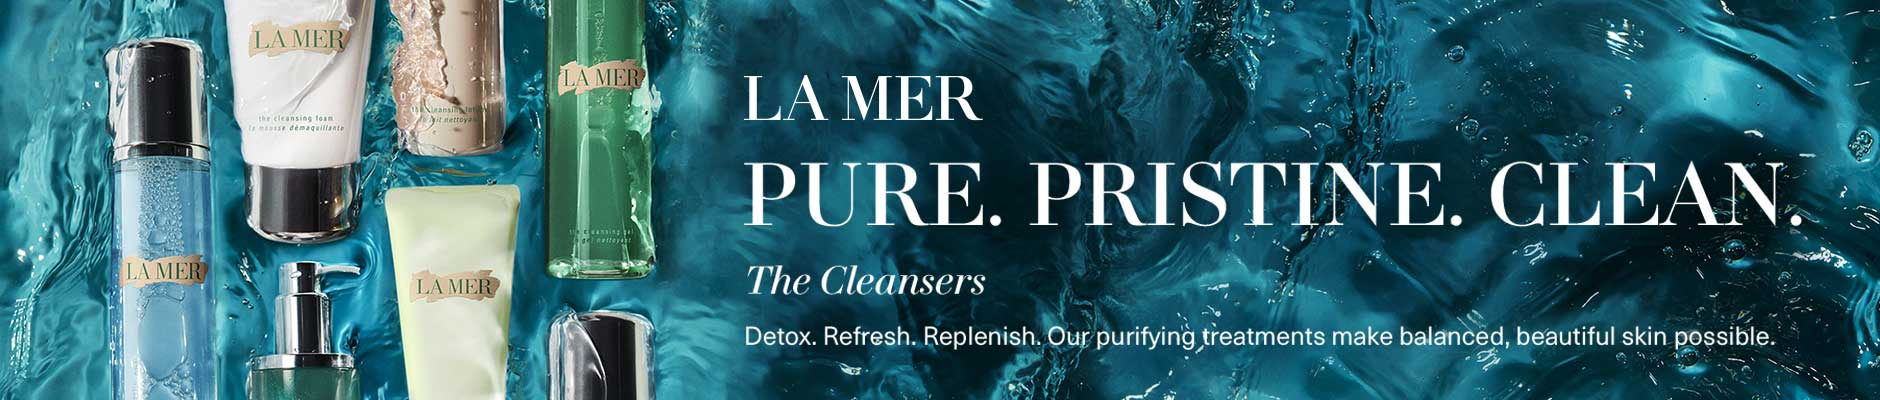 La Mer: Pure. Pristine. Clean. - The Cleansers